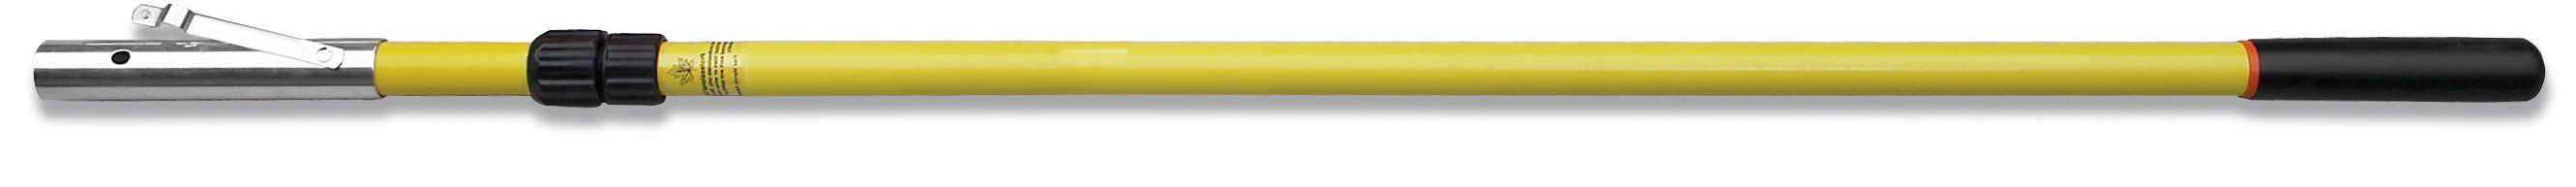 12' telescopic pole with female ferrule and rubber end cap FR-12TB